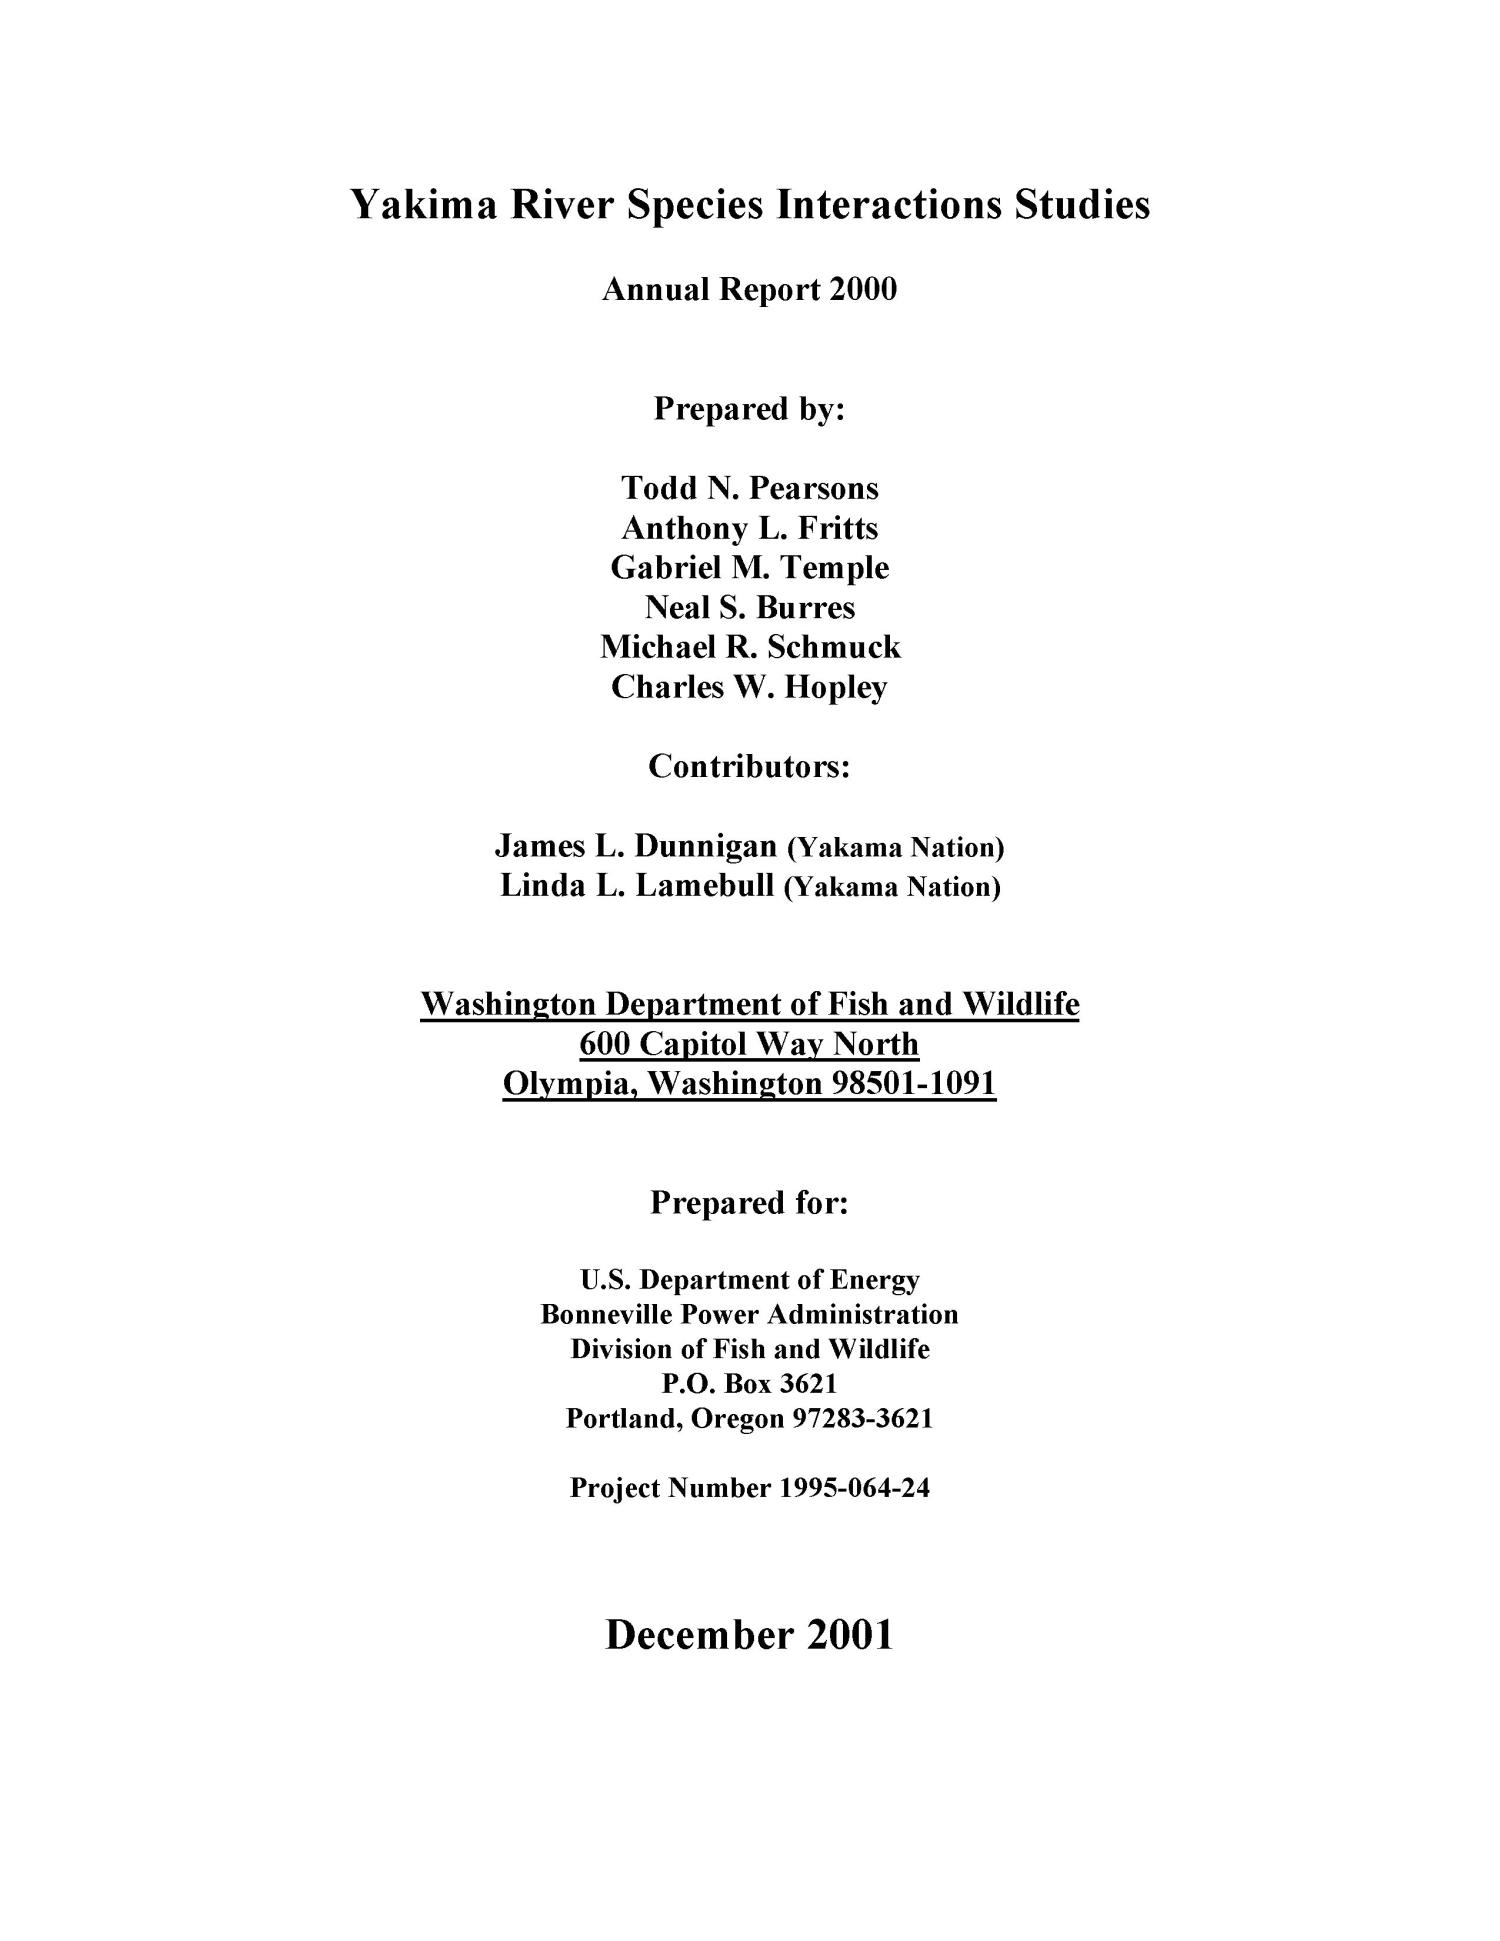 Yakima River Species Interactions Studies, Annual Report 2000.                                                                                                      [Sequence #]: 3 of 125